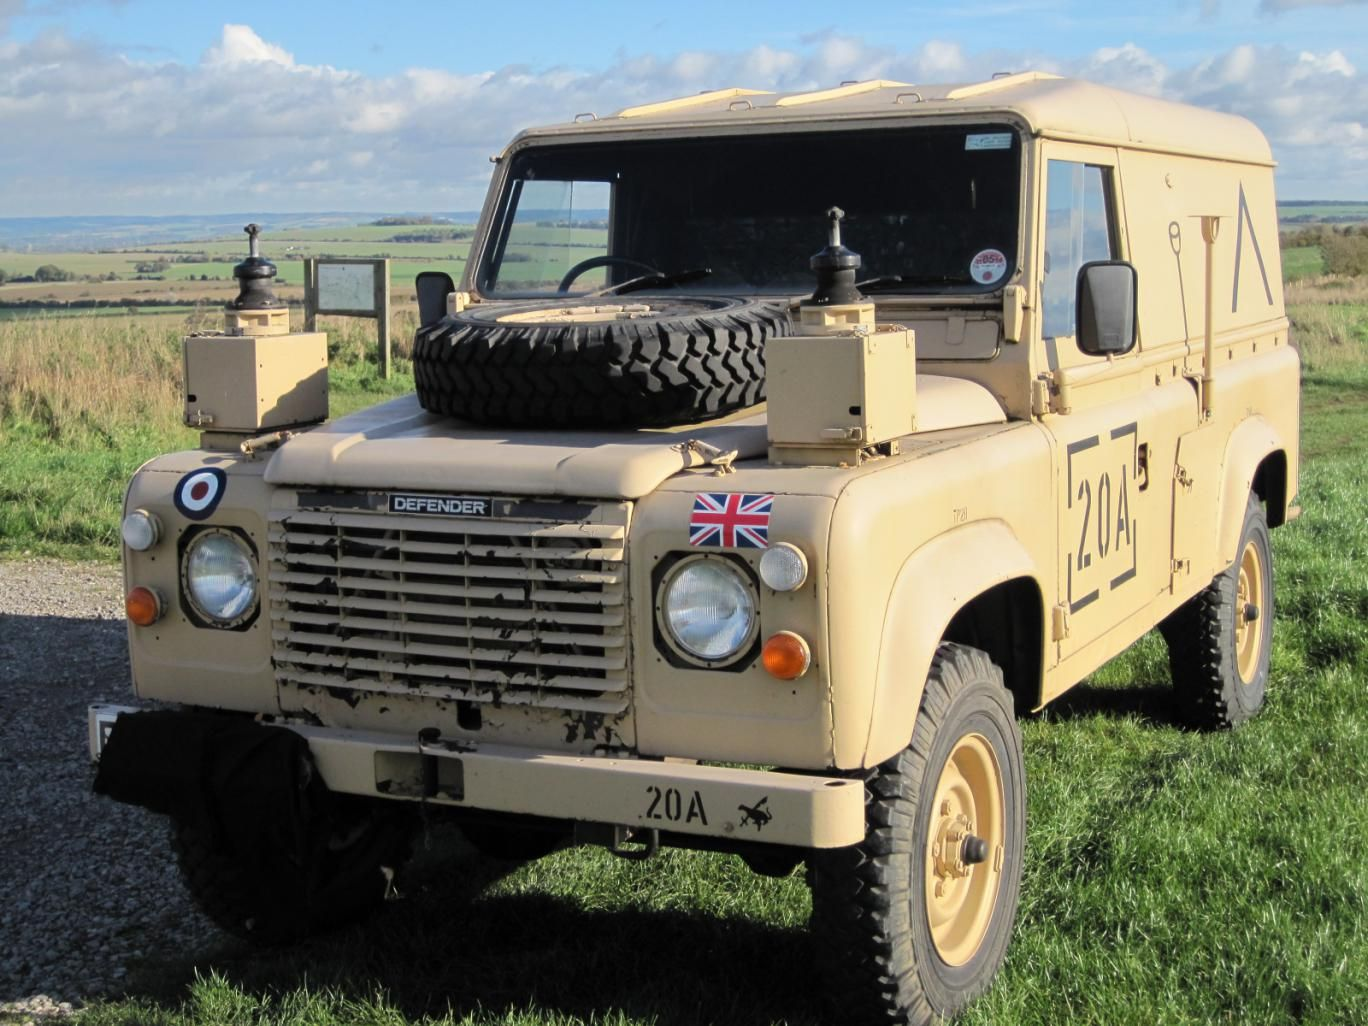 spent front it panther defender landrover brakes williams on for mechanically truck reg h months with getting back recently perfect mot sale ifor cab including rover had pink new land